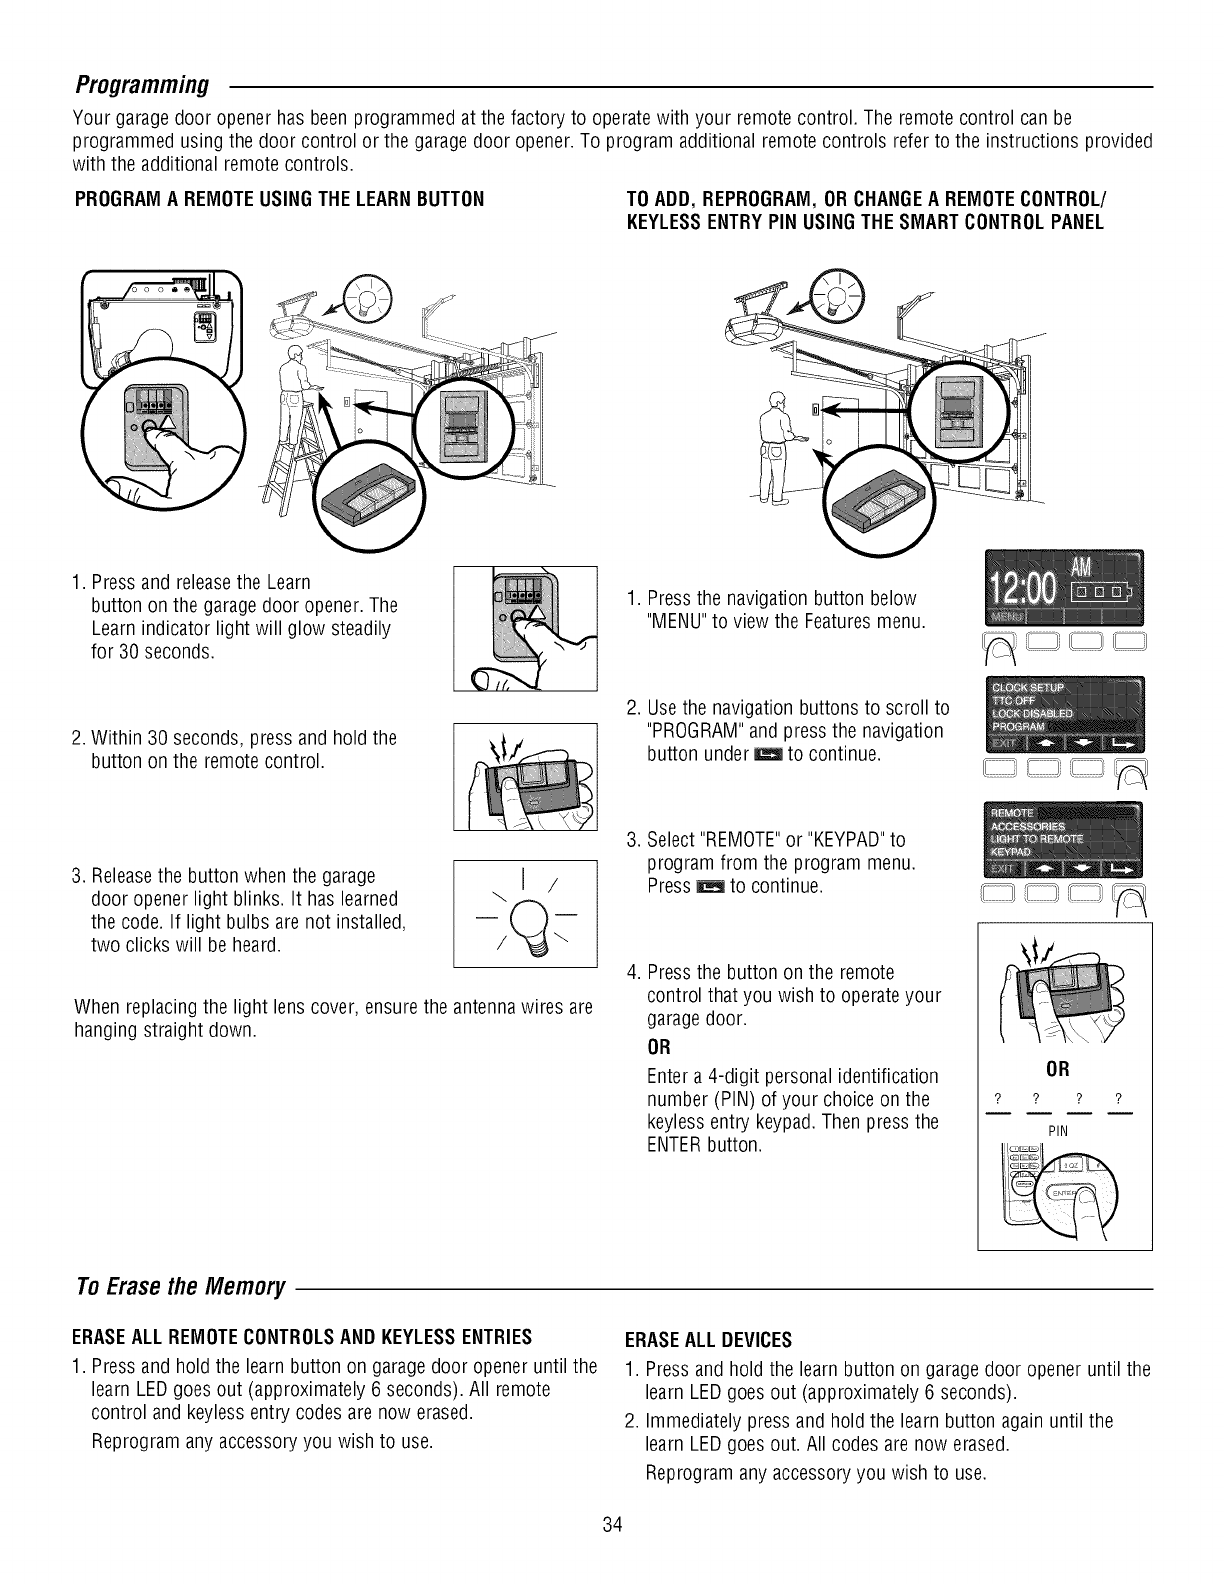 Page 34 Of Craftsman Garage Door Opener 1393043 User Guide Remote Antenna For Programming Your Garagedoor Openerhas Been Programmed At The Factory To Operatewith